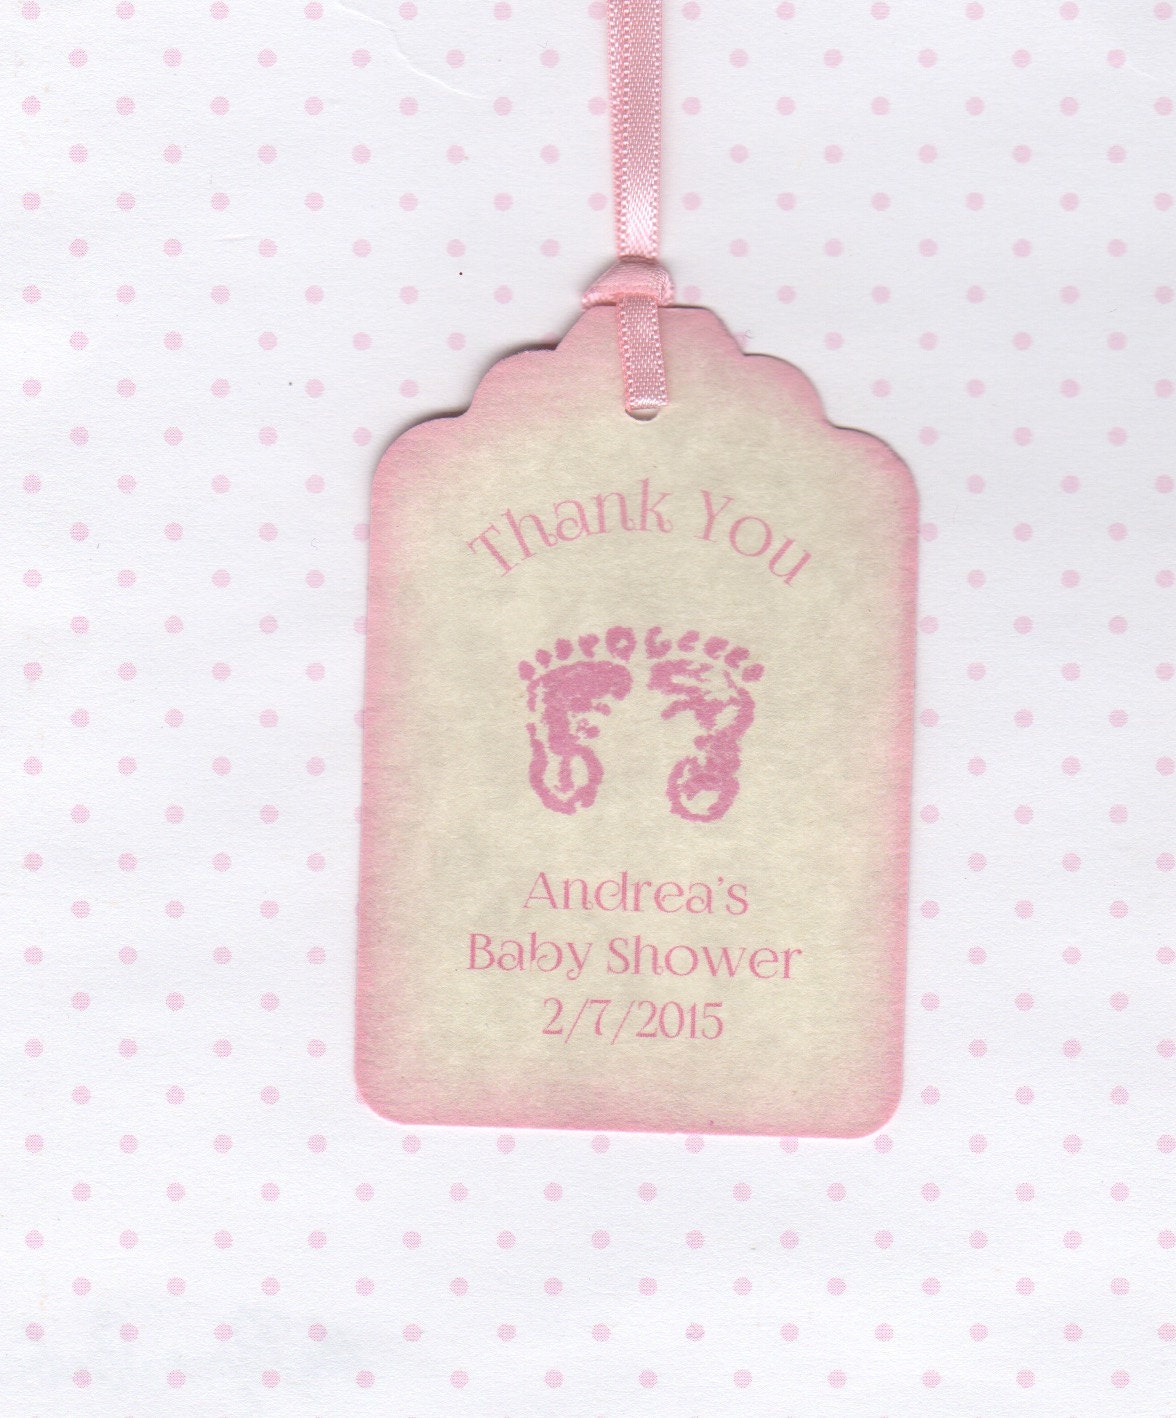 baby shower tags tags for baby shower baby shower thank you